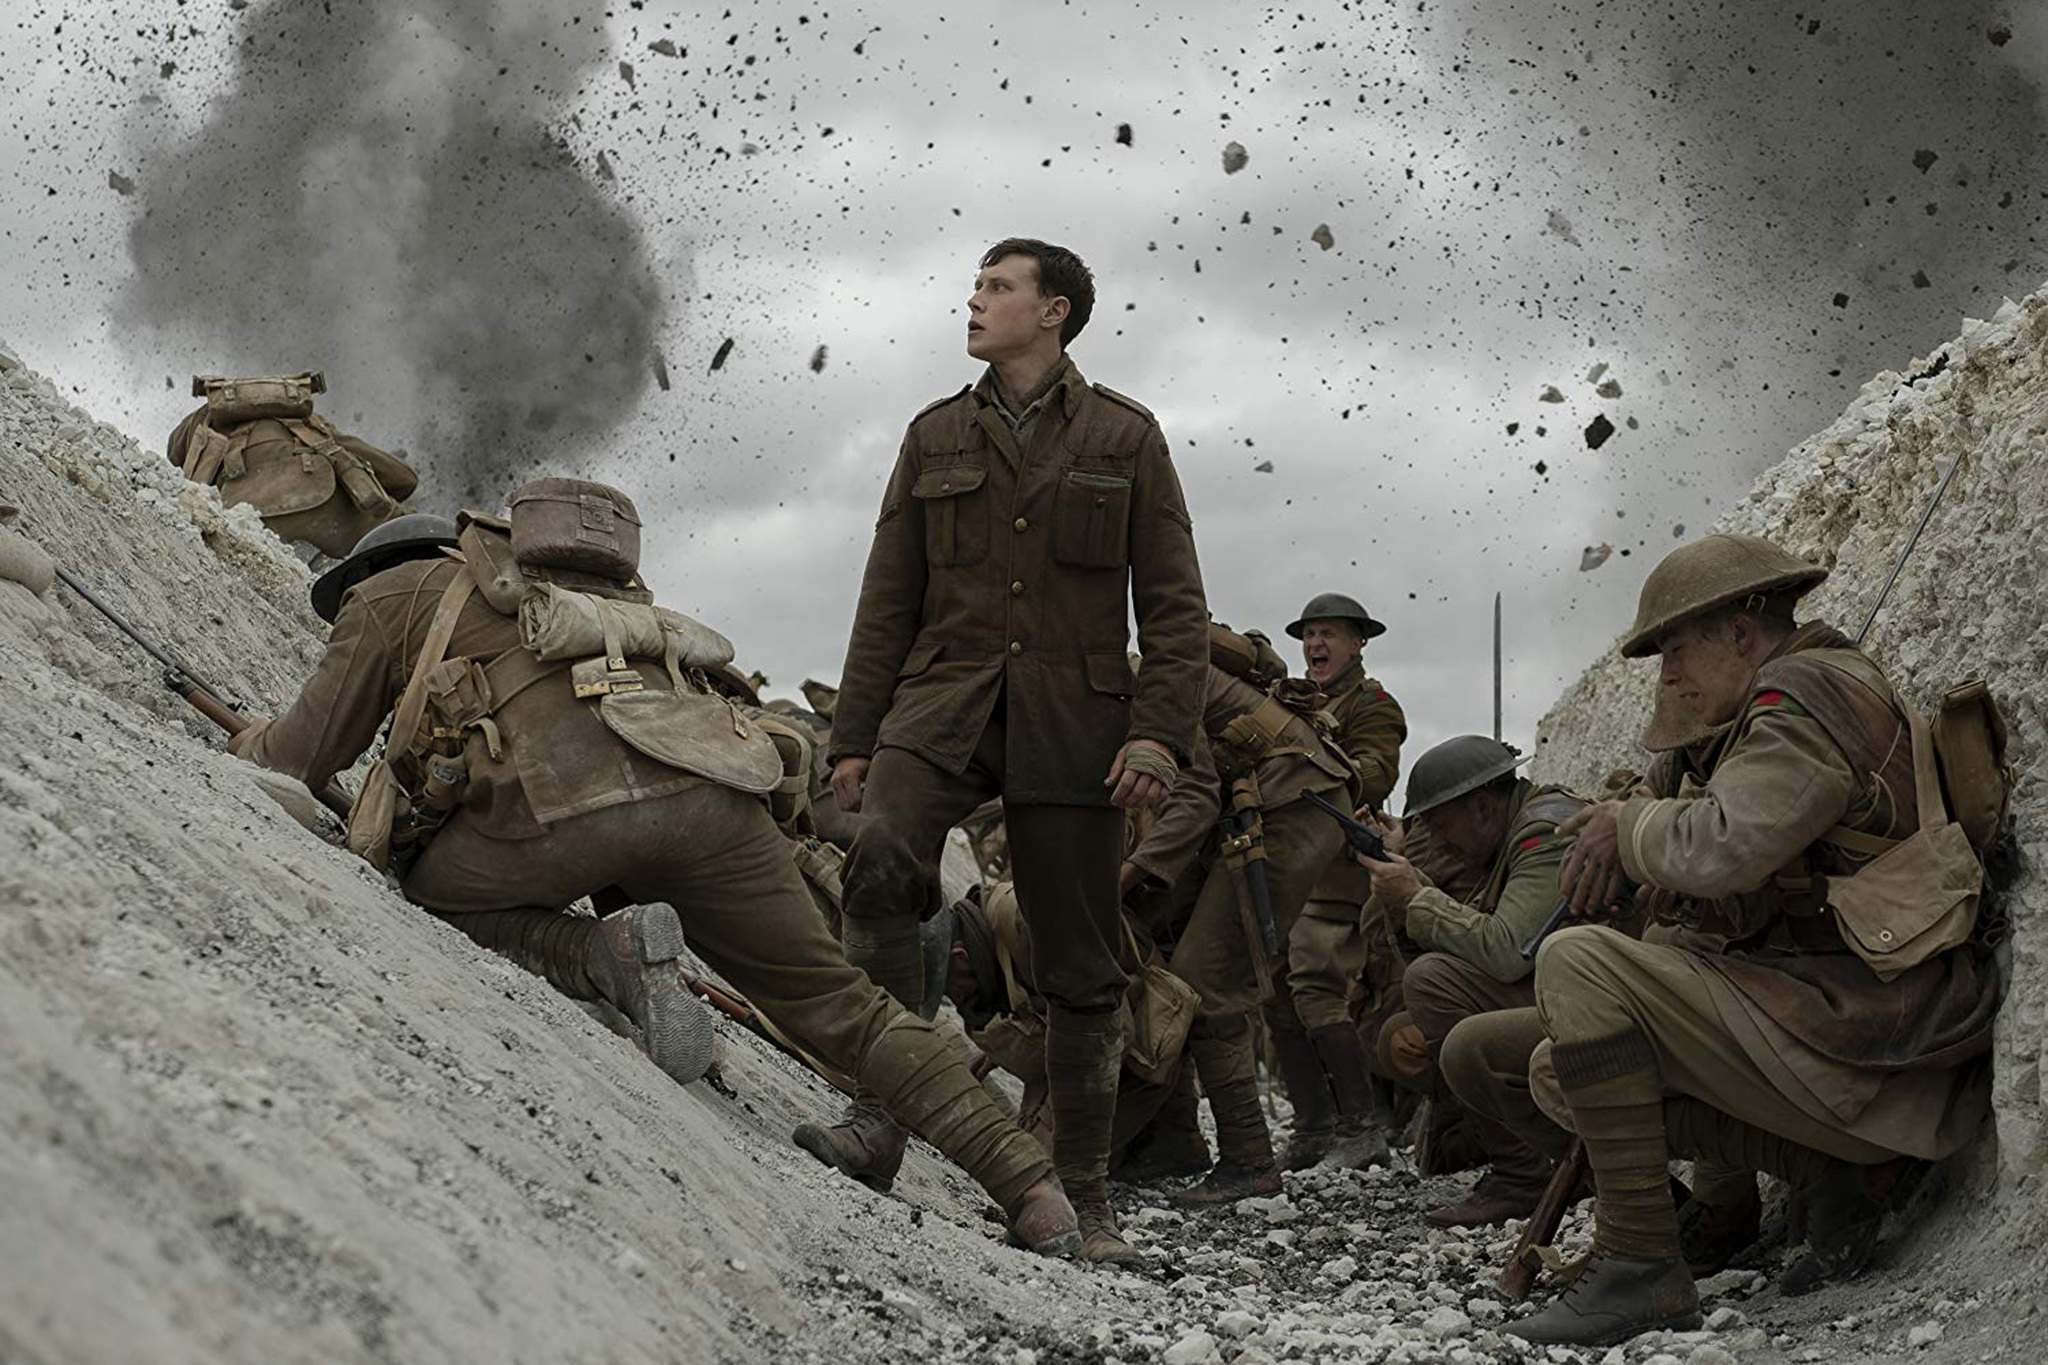 Imdb/TNS</p><p>George MacKay plays a soldier sent on a harrowing mission in 1917. </p>